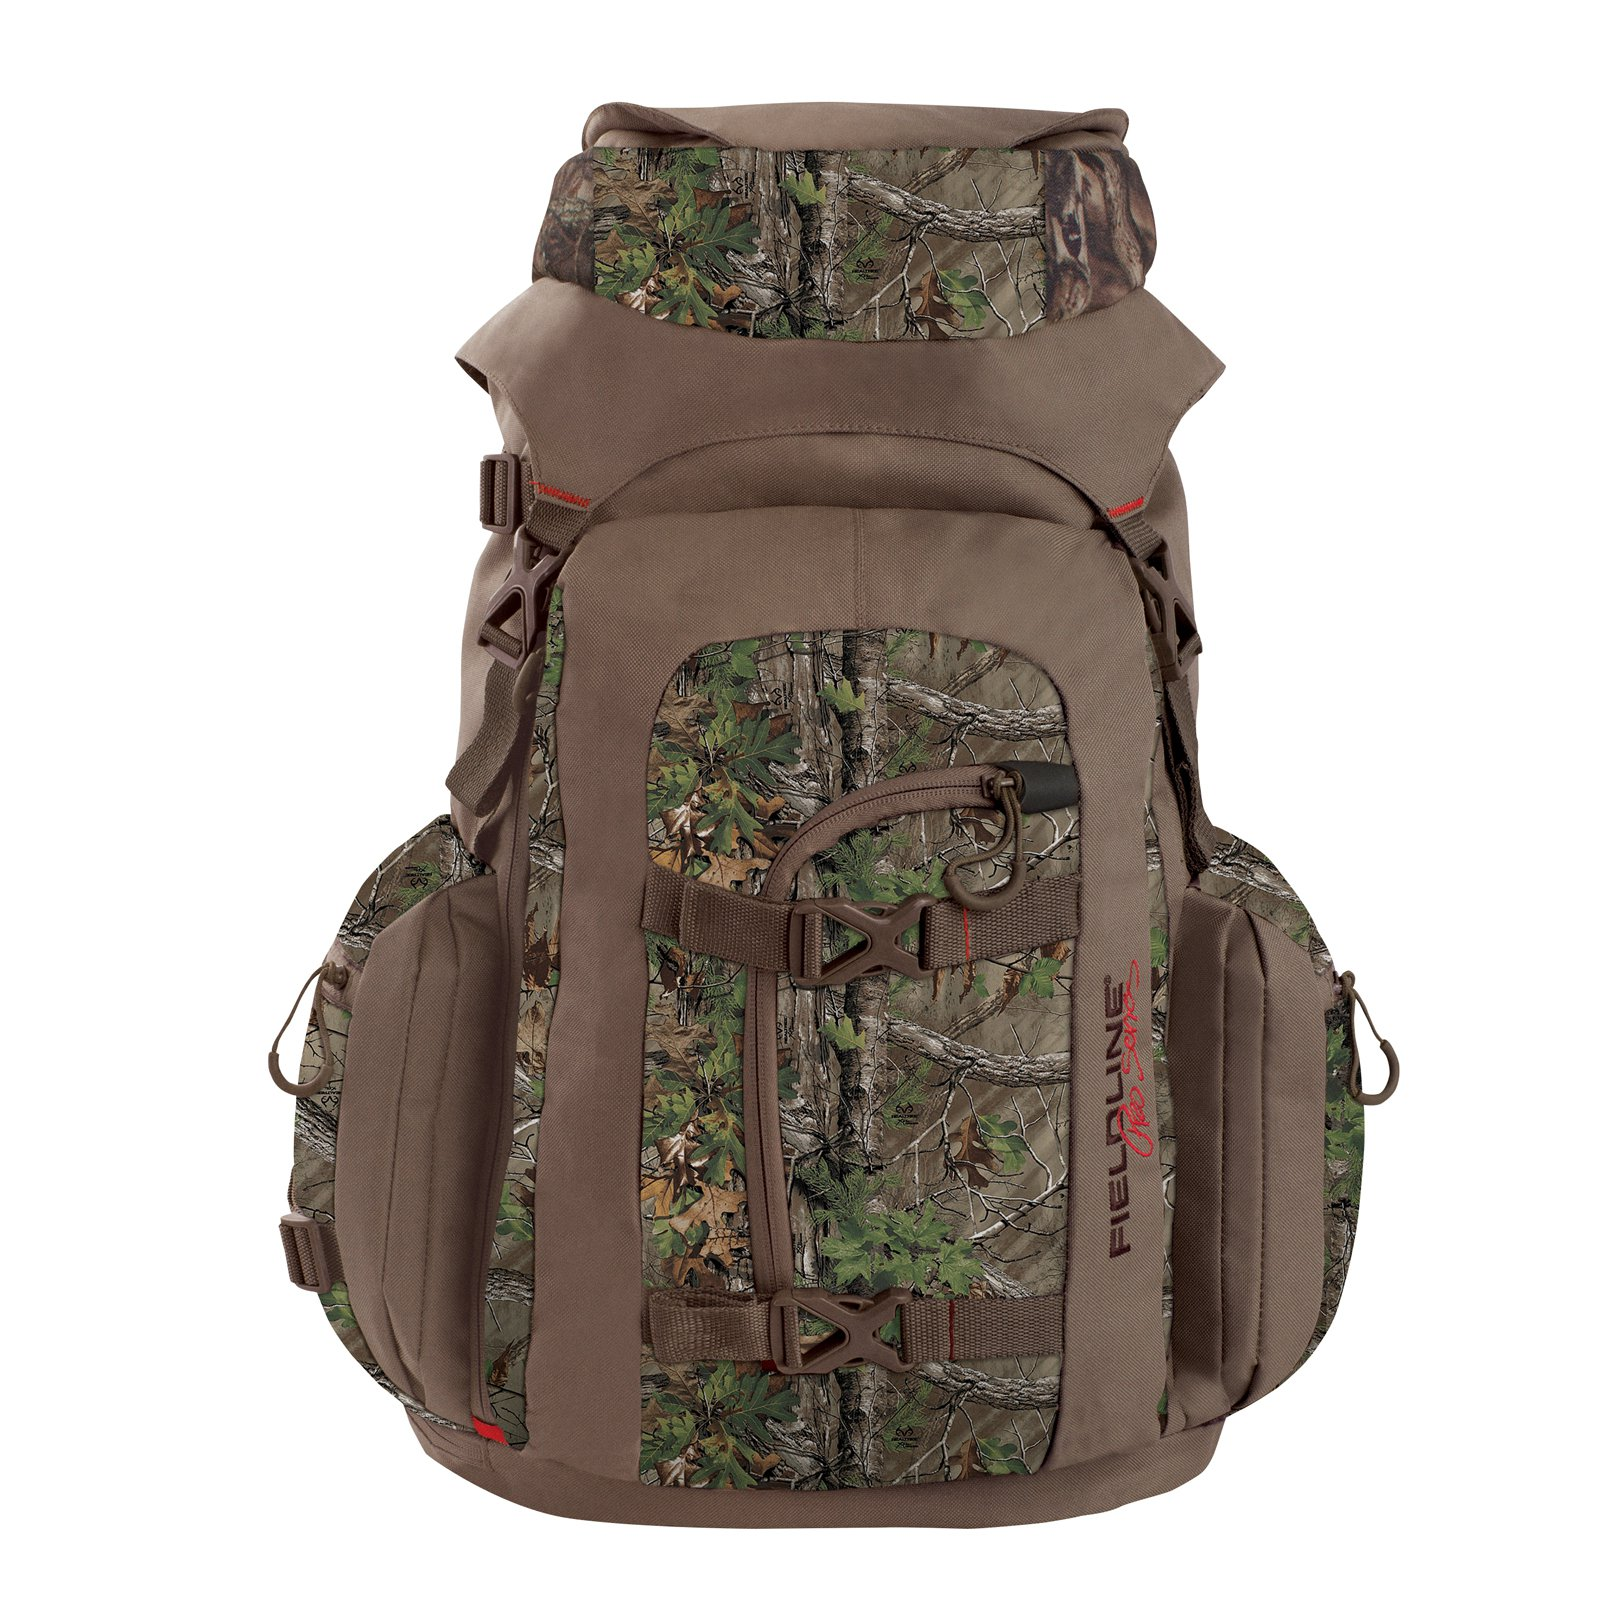 Fieldline Pro Series 1,025 Cui Glenwood Canyon Internal Frame Pack, Realtree Xtra Camo